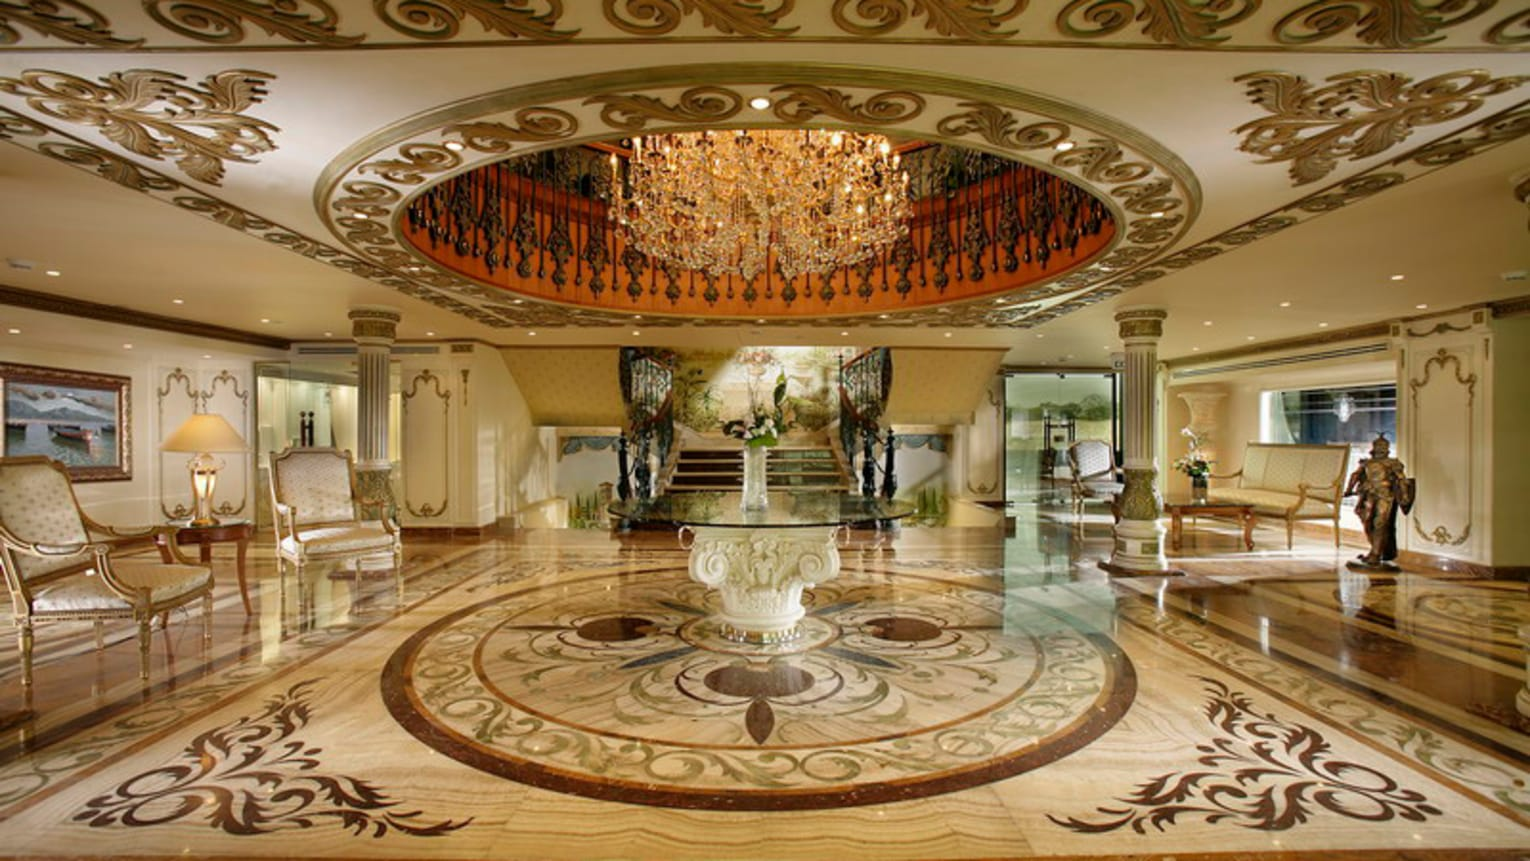 Four Seasons Hotel Cairo at the First Residence Empfangshalle